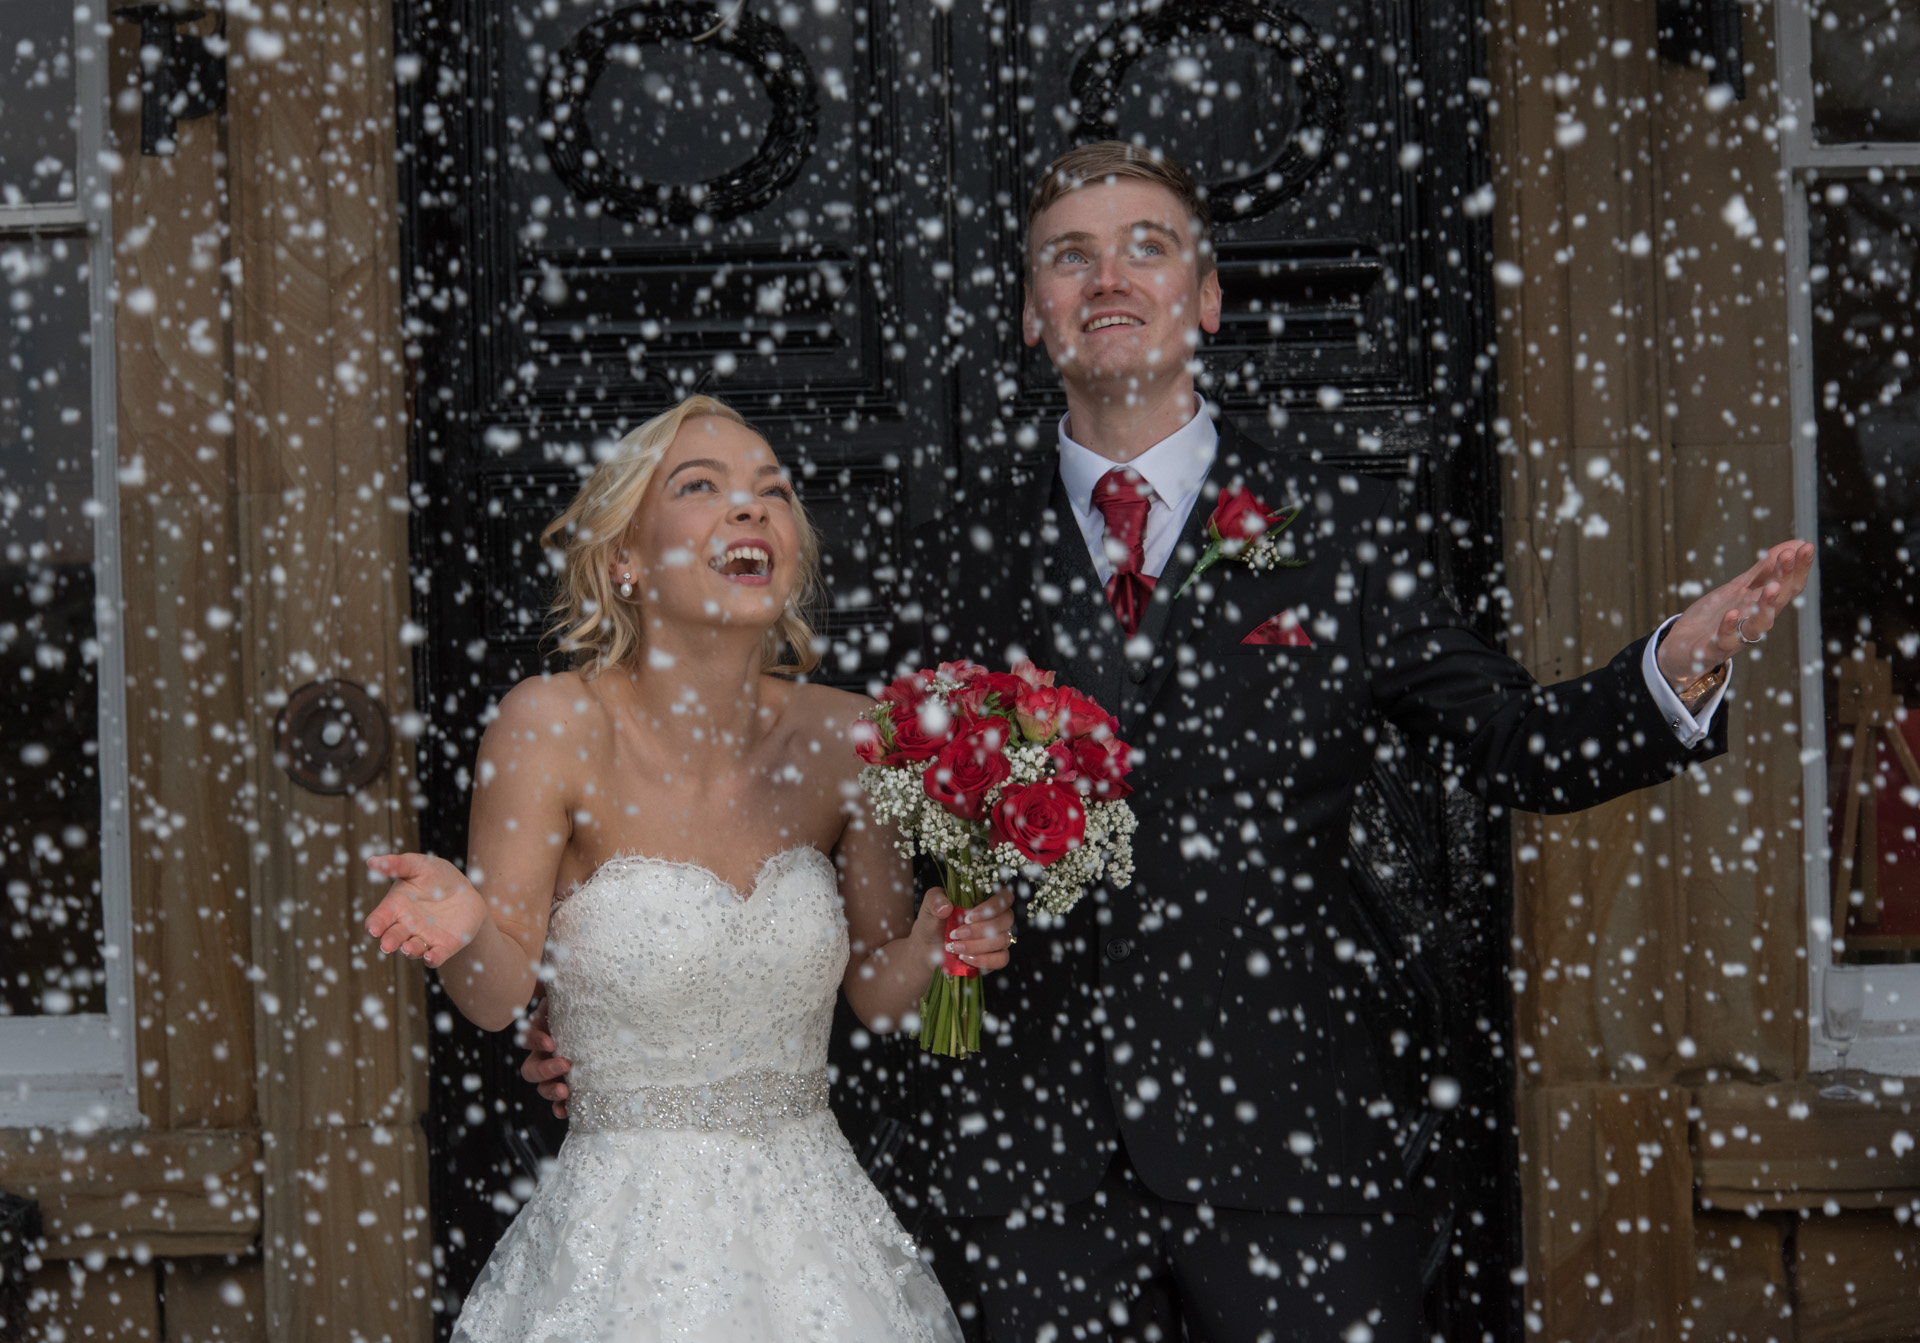 Special offer: Winter weddings for £499